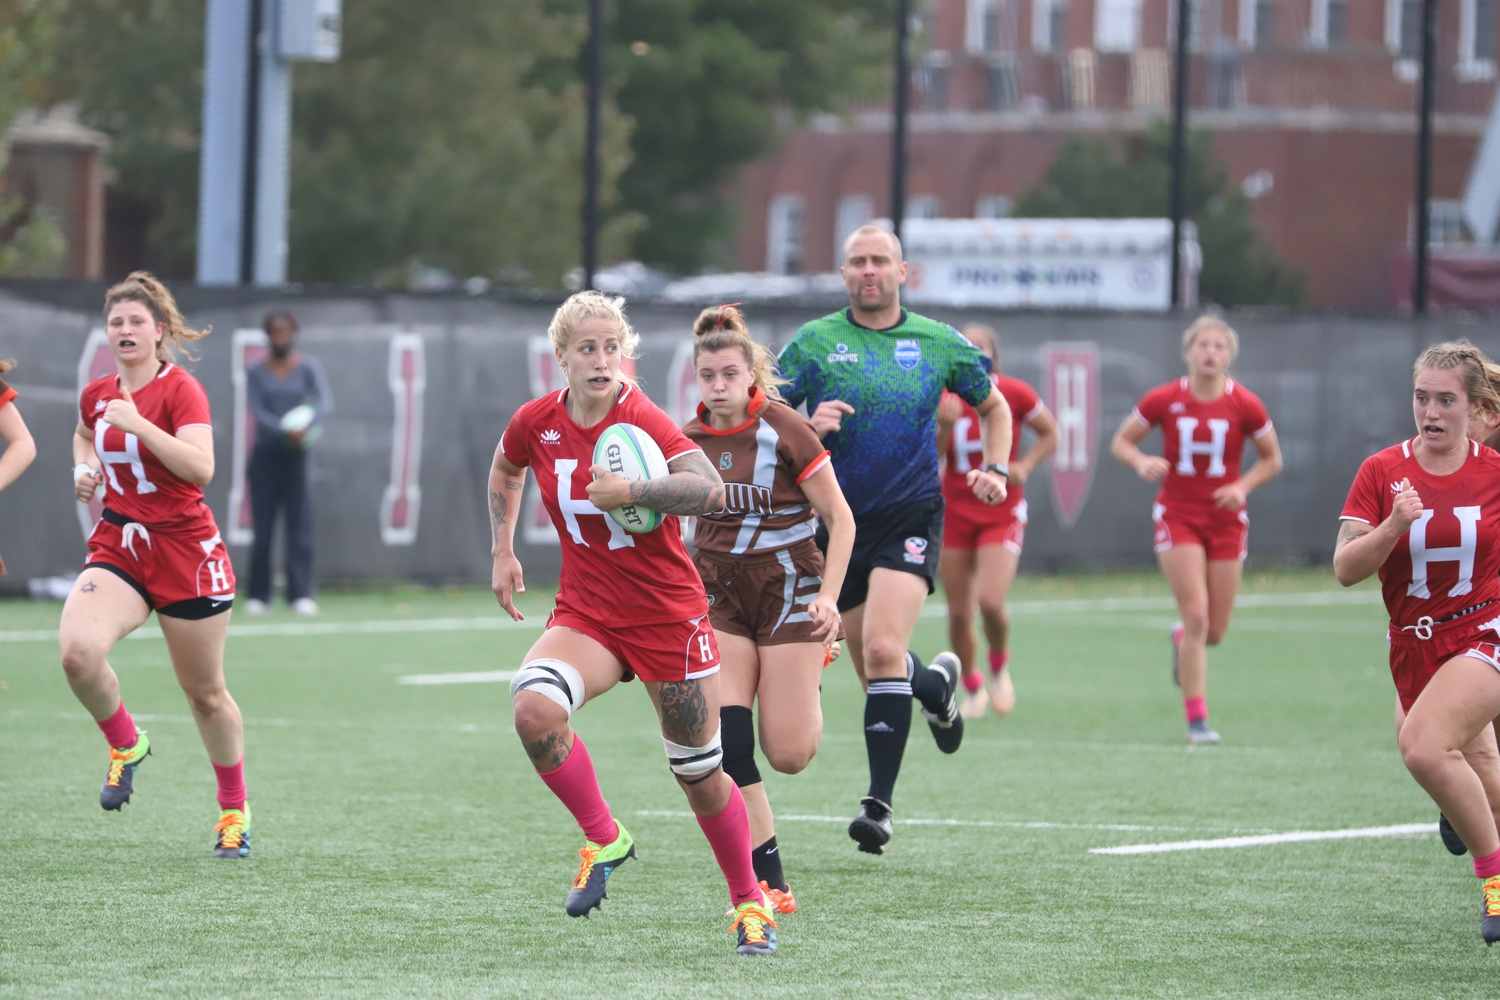 Senior prop/lock Erica Jarrell sprints away from defenders during Harvard's win over Brown. Jarrell's Crimson remains undefeated on the season.